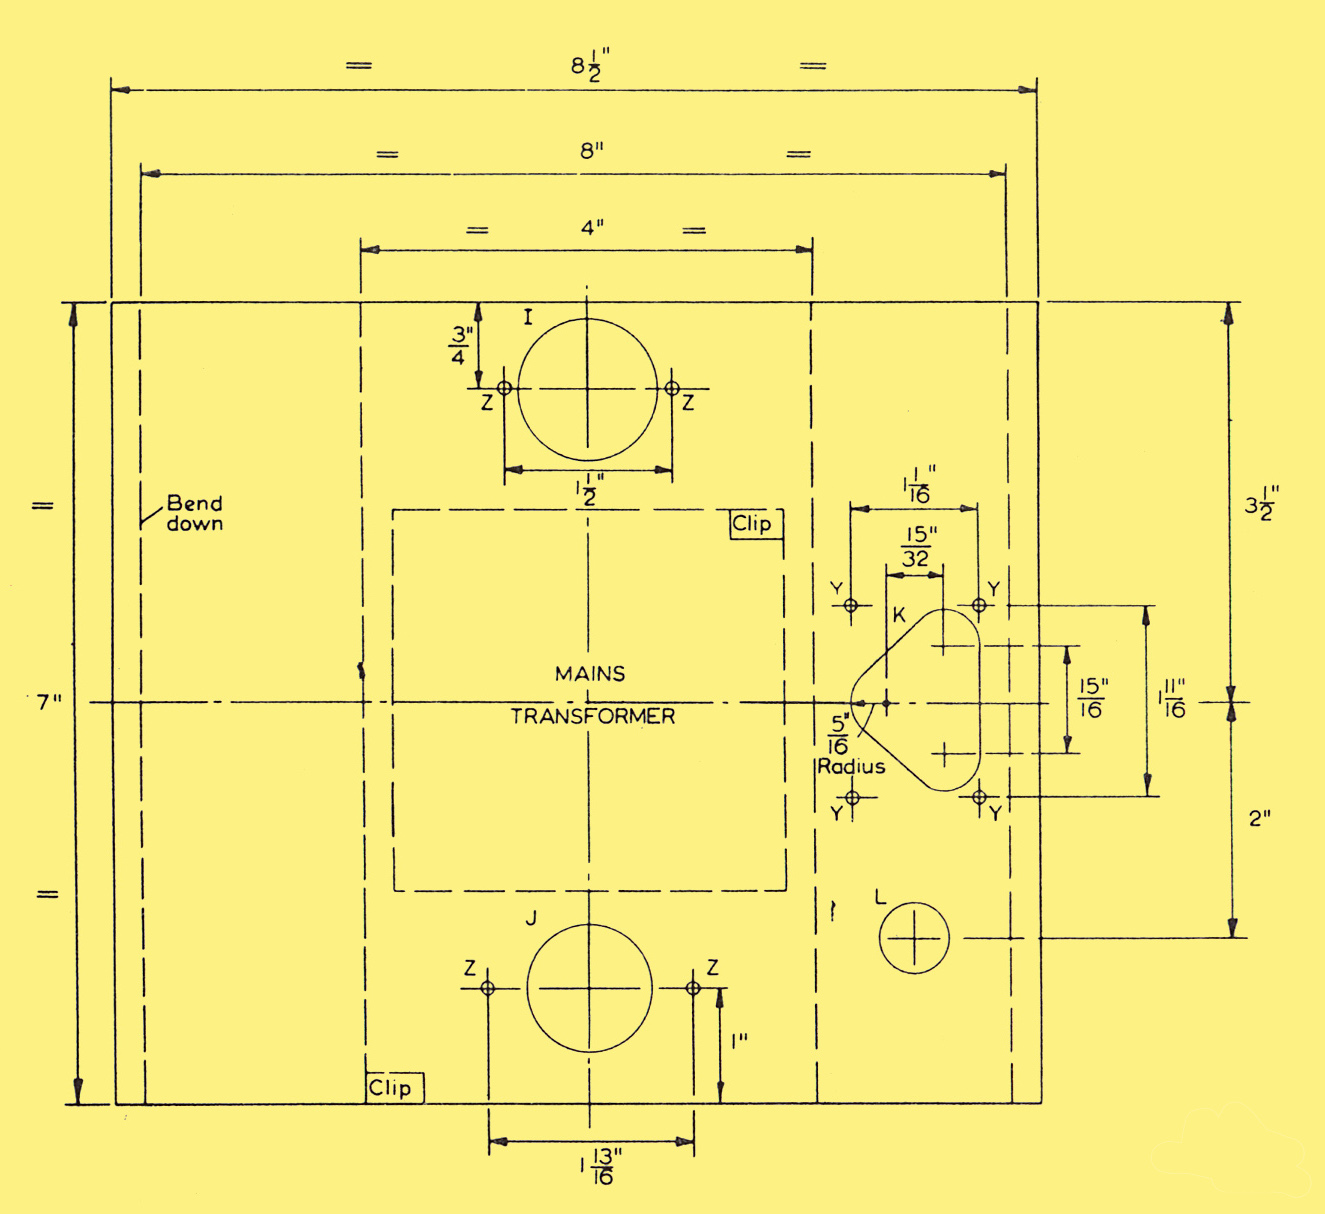 Ten Watt High Quality Stereophonic Amplifier 5 Circuit Diagram Power Supply Chassis With And Without Controls